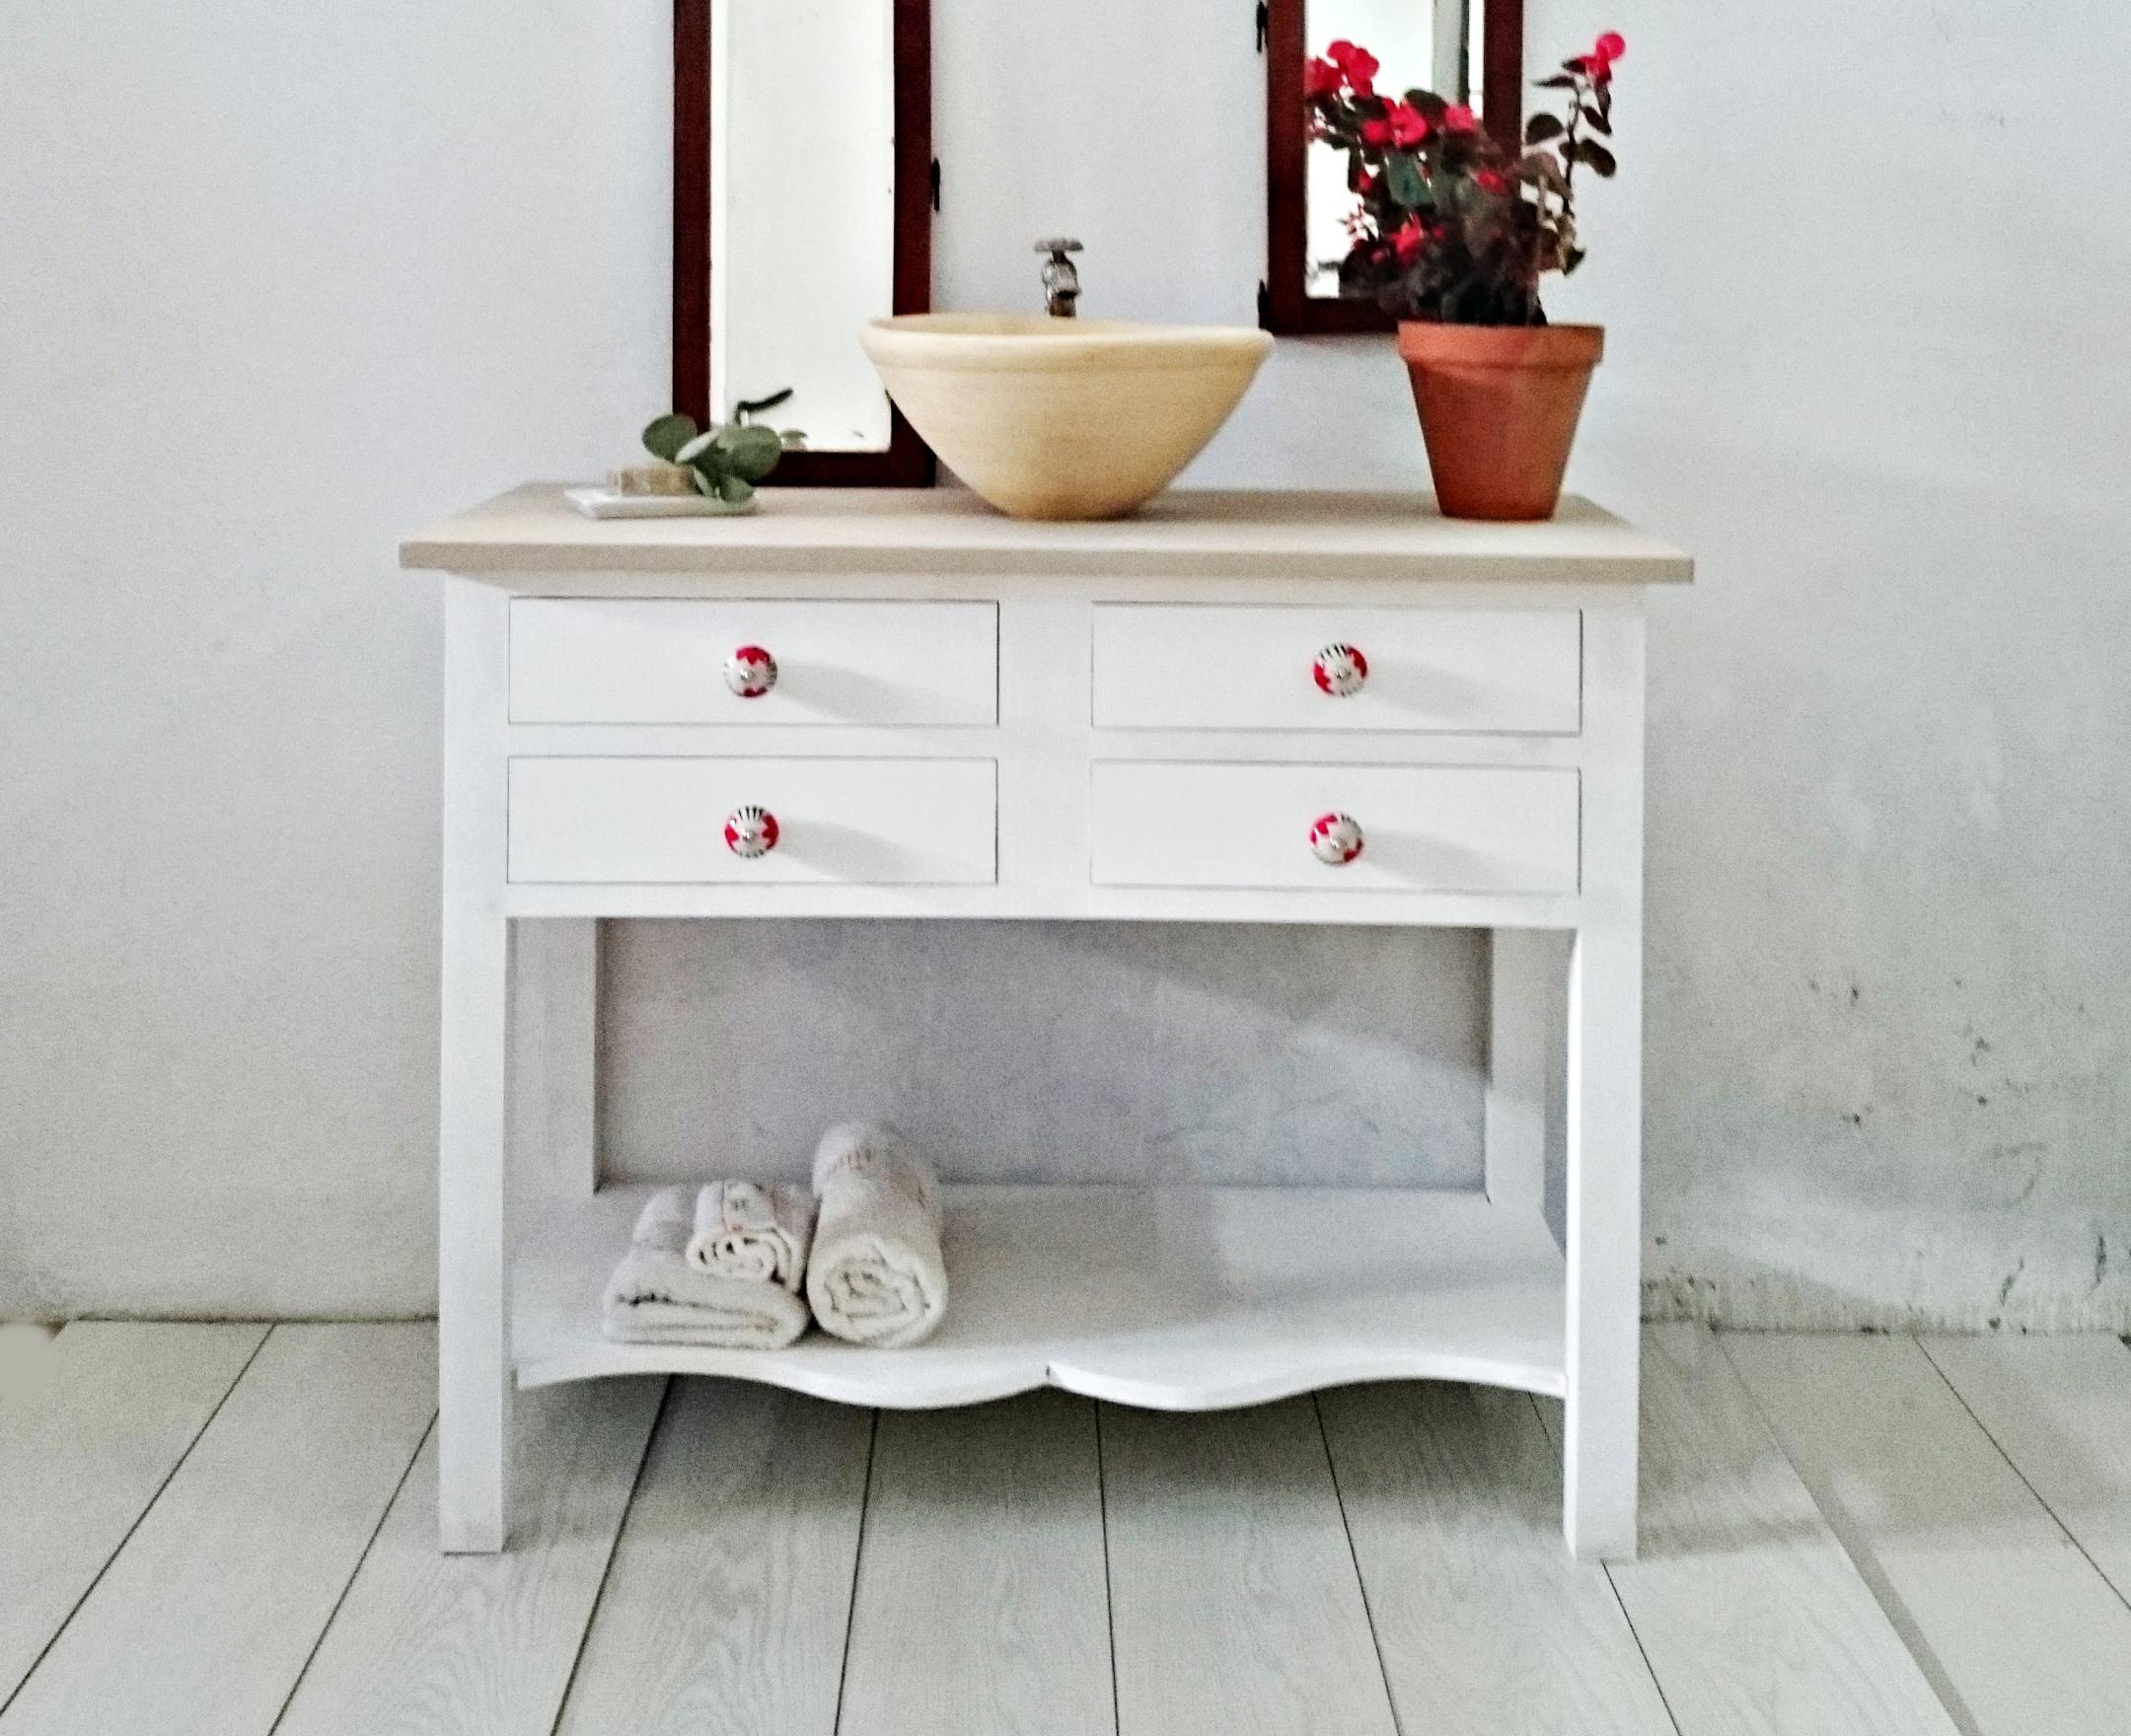 Pintar Muebles Vintage Blanco Pintar Muebles En Blanco Decape Great With Pintar Muebles